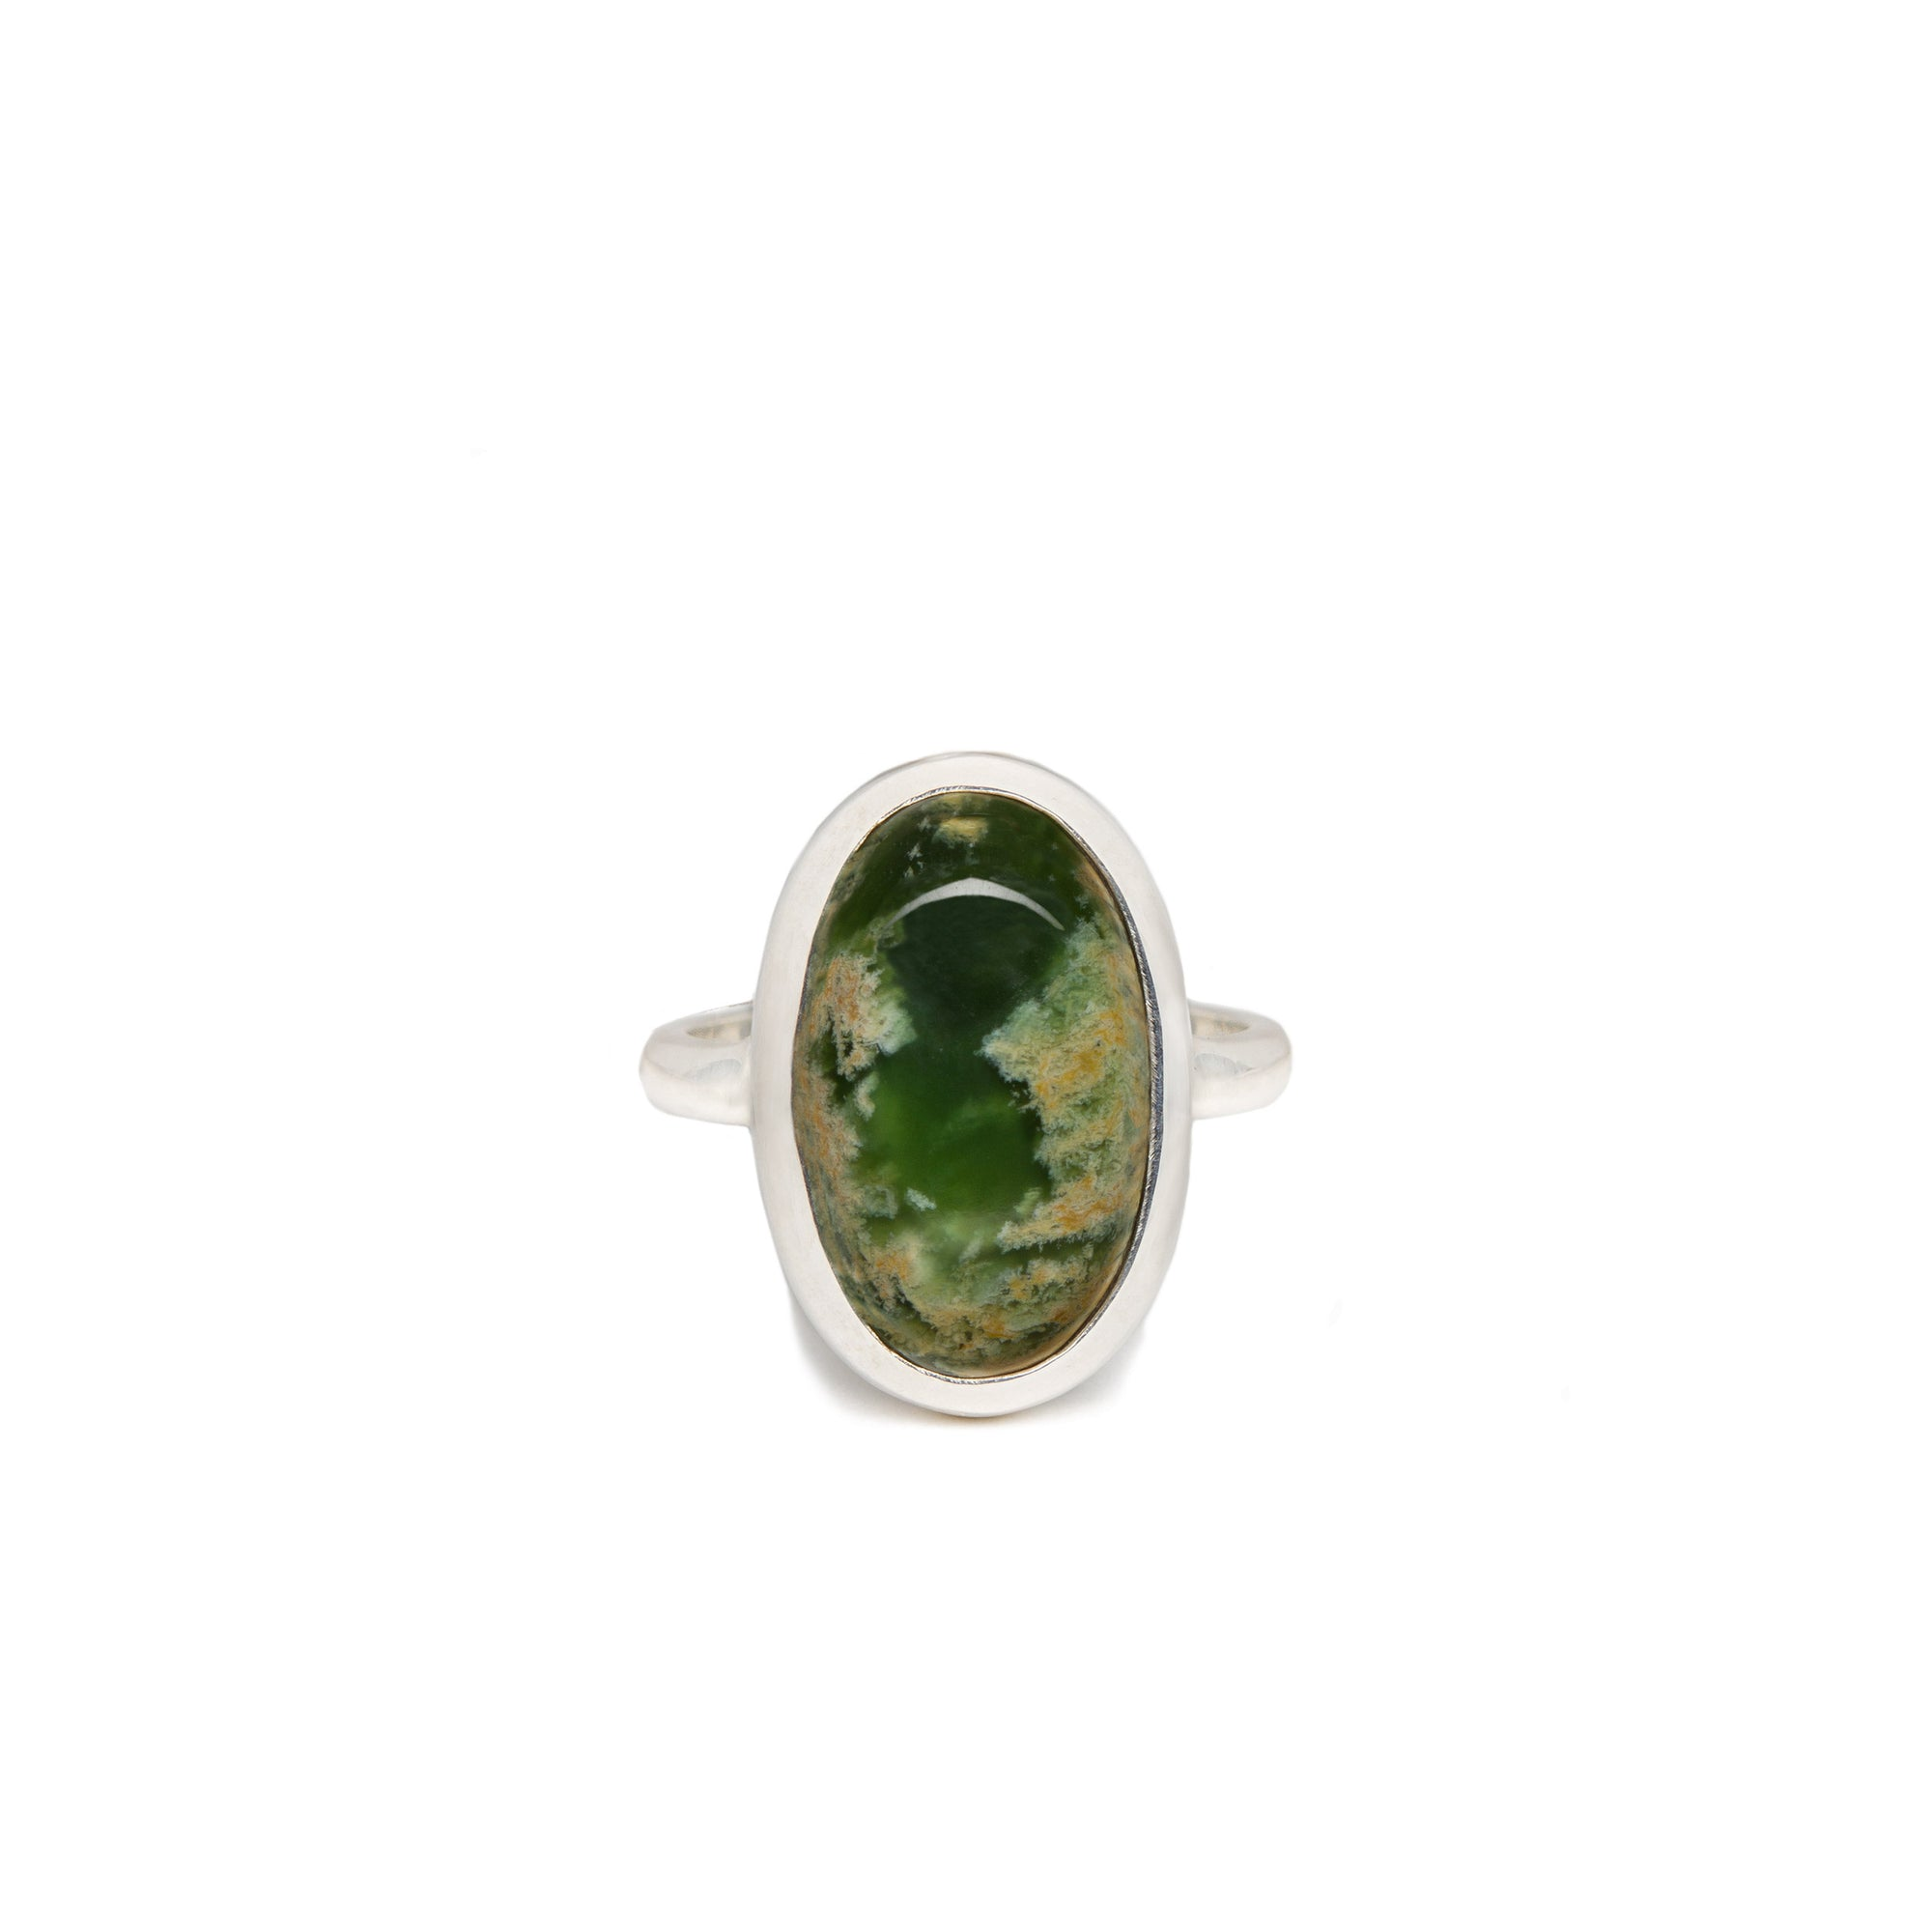 New Zealand Flower Jade Sterling Silver Ring - Size O